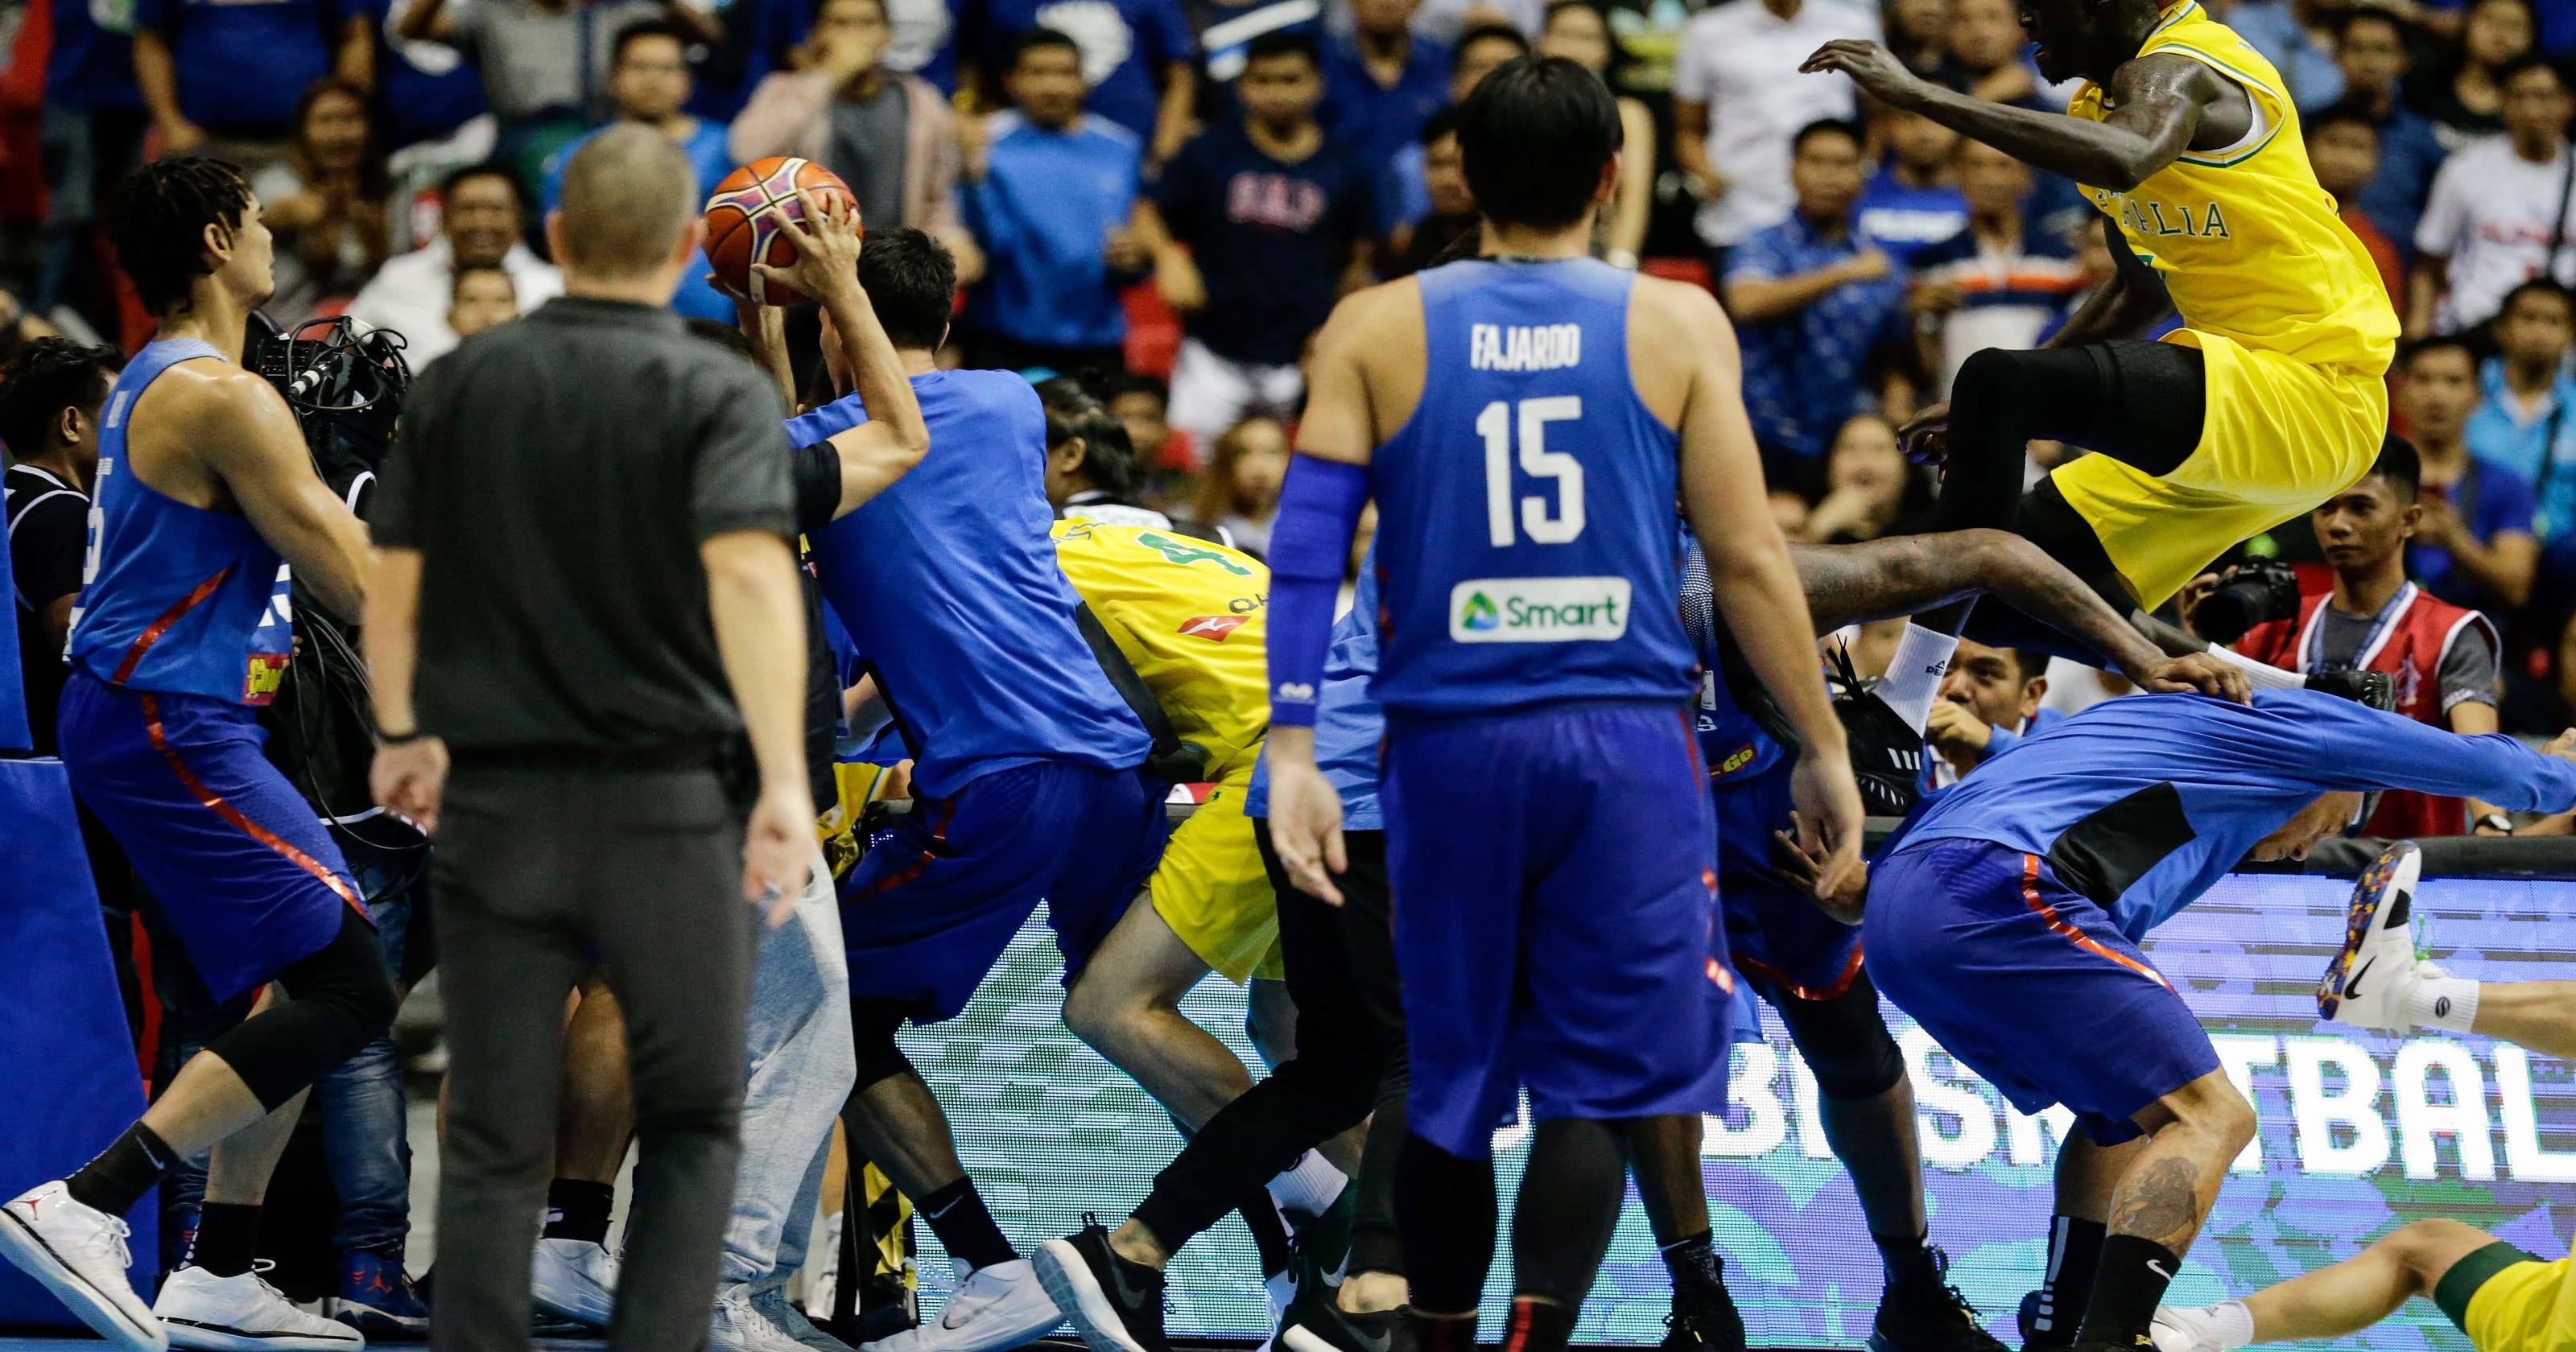 Australia-Philippines FIBA basketball game gets ugly with 13 ejections  after massive brawl 79153d04b